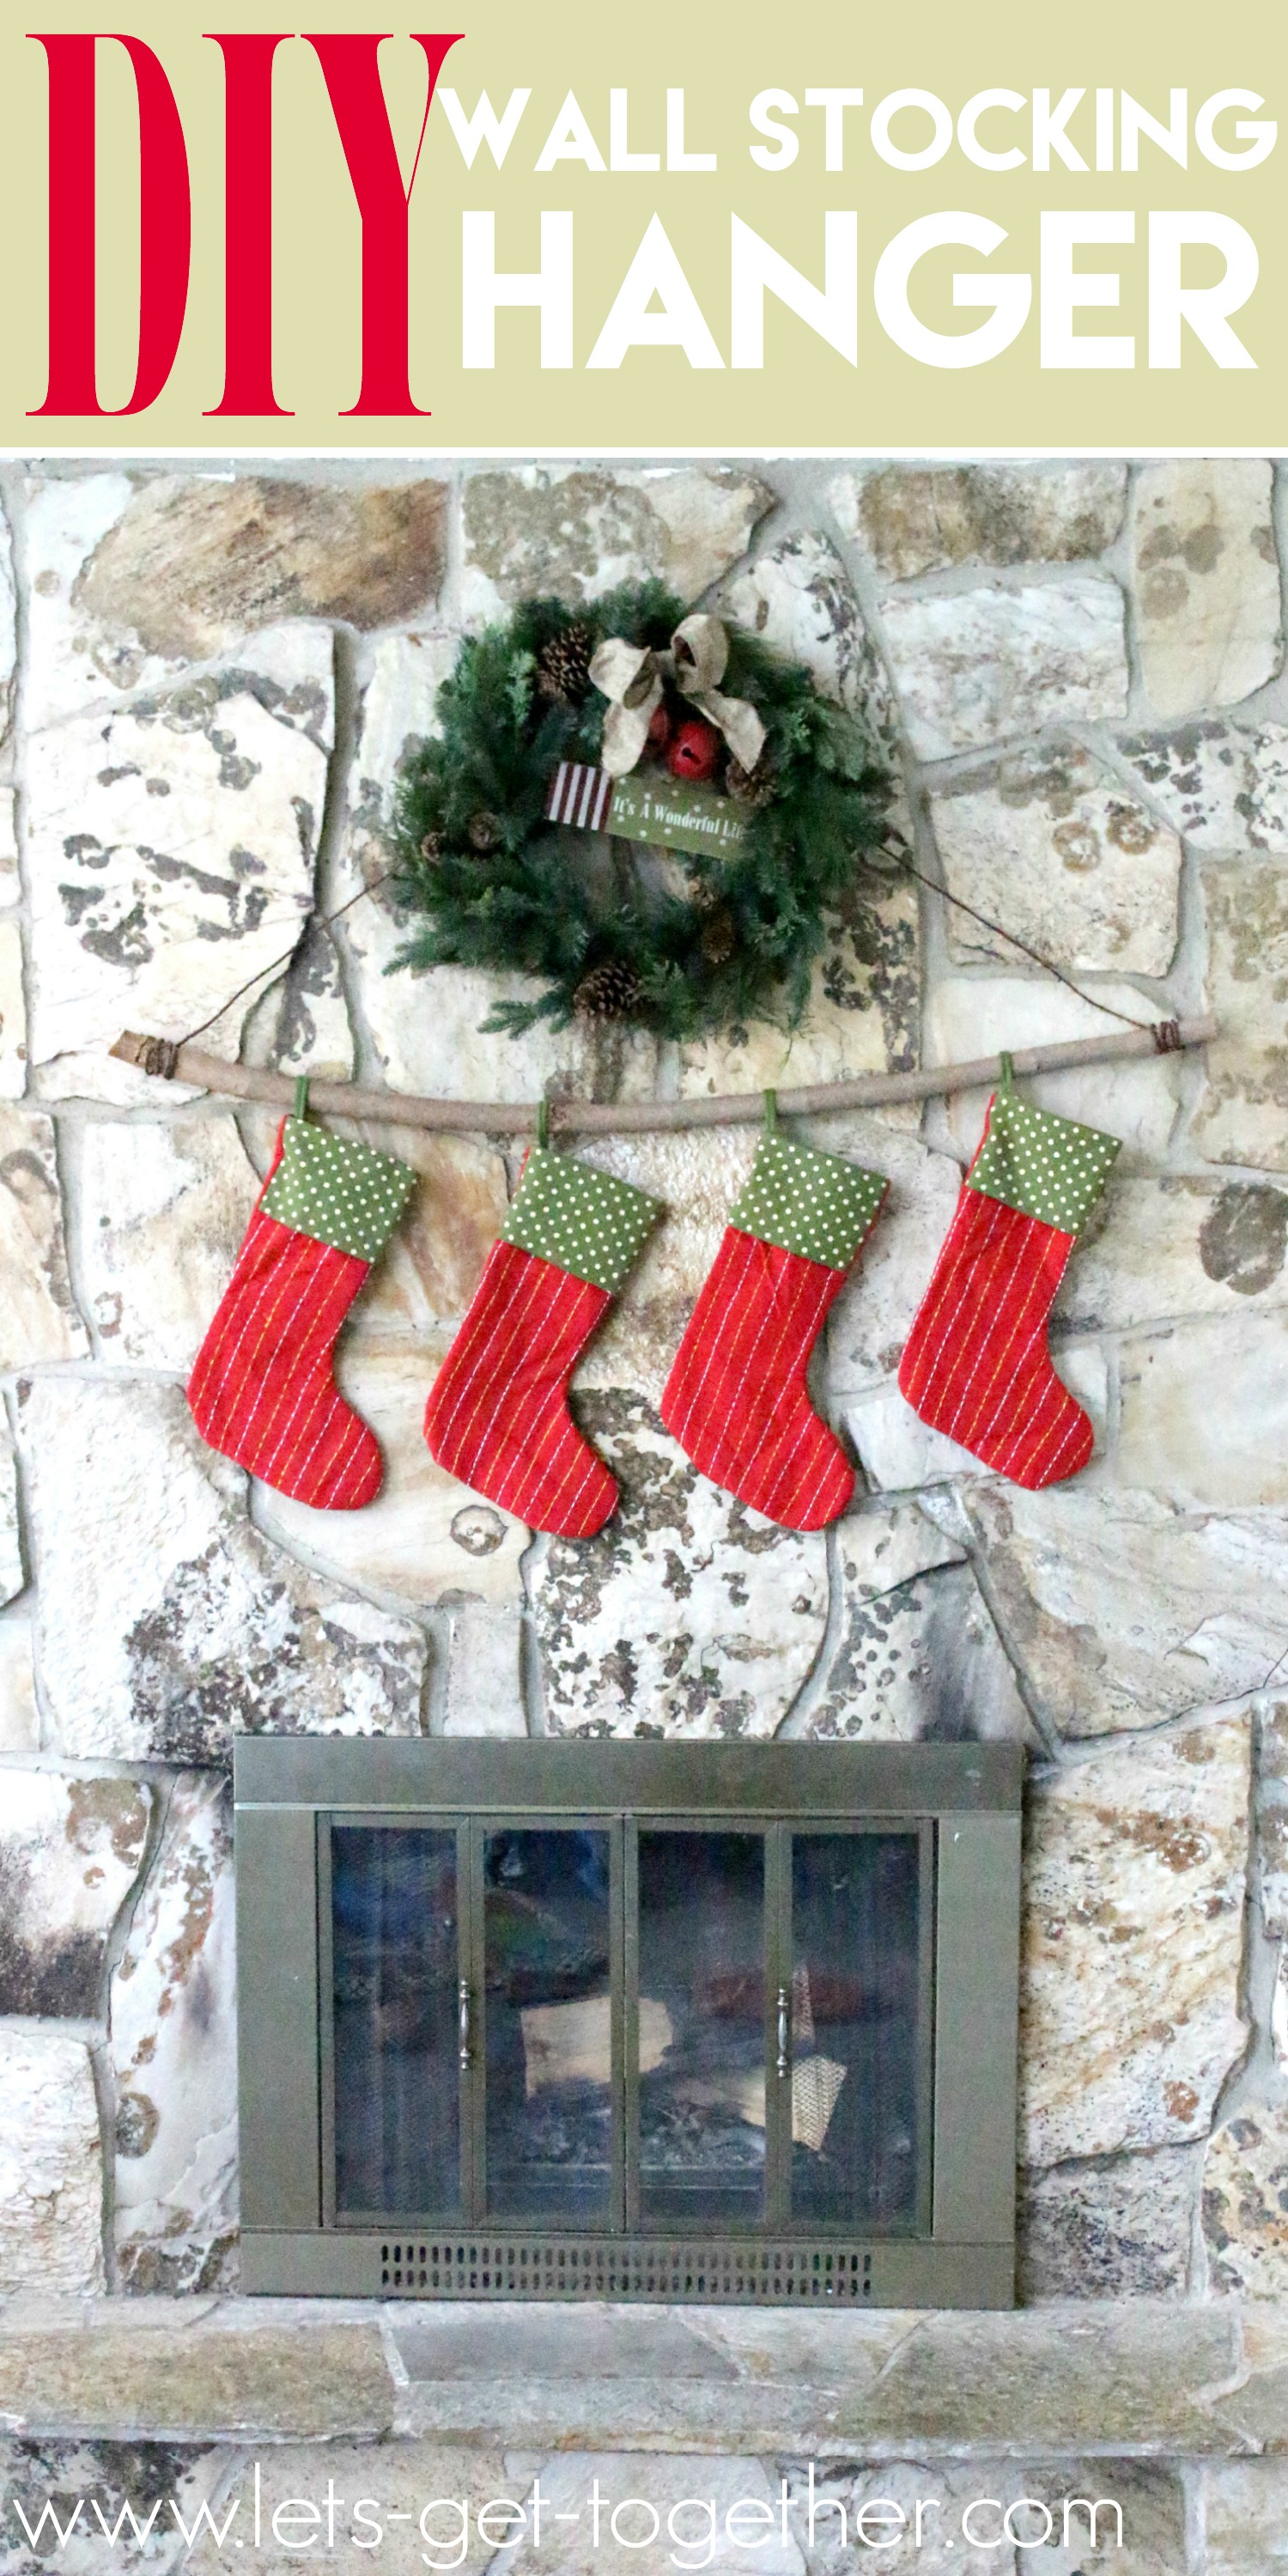 ideas white mantel endearing stone red stocking amazing fireplace elegant living home decor christmas hanging special speci flowers decoration modern stacked valances holders your for pine divine complete also stockings room garland deco integrates